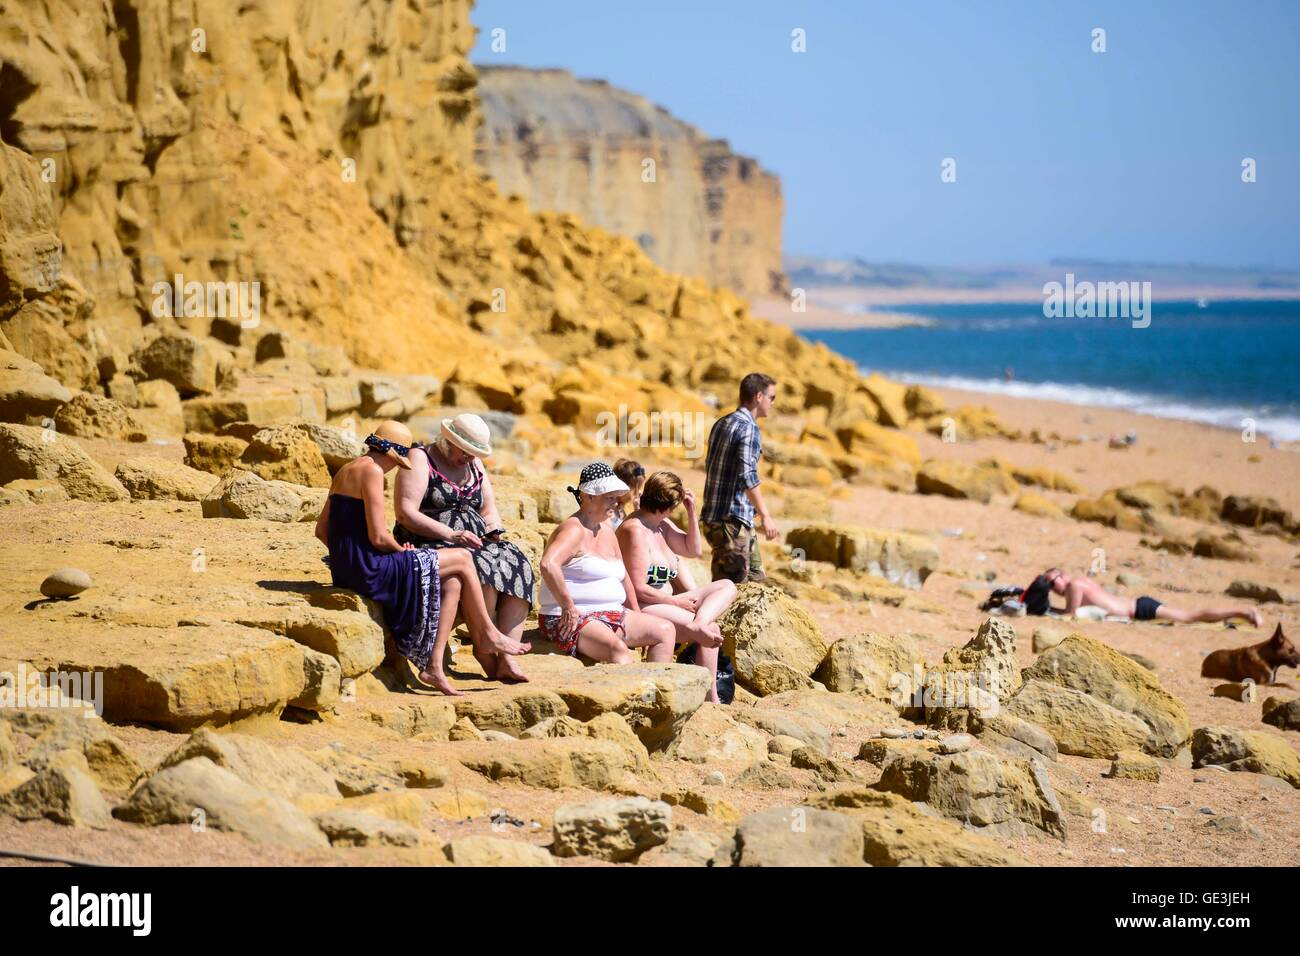 West Bay, Dorset, UK. 22nd July 2016. Holidaymakers who are unaware of the danger, sitting close to the base of - Stock Image